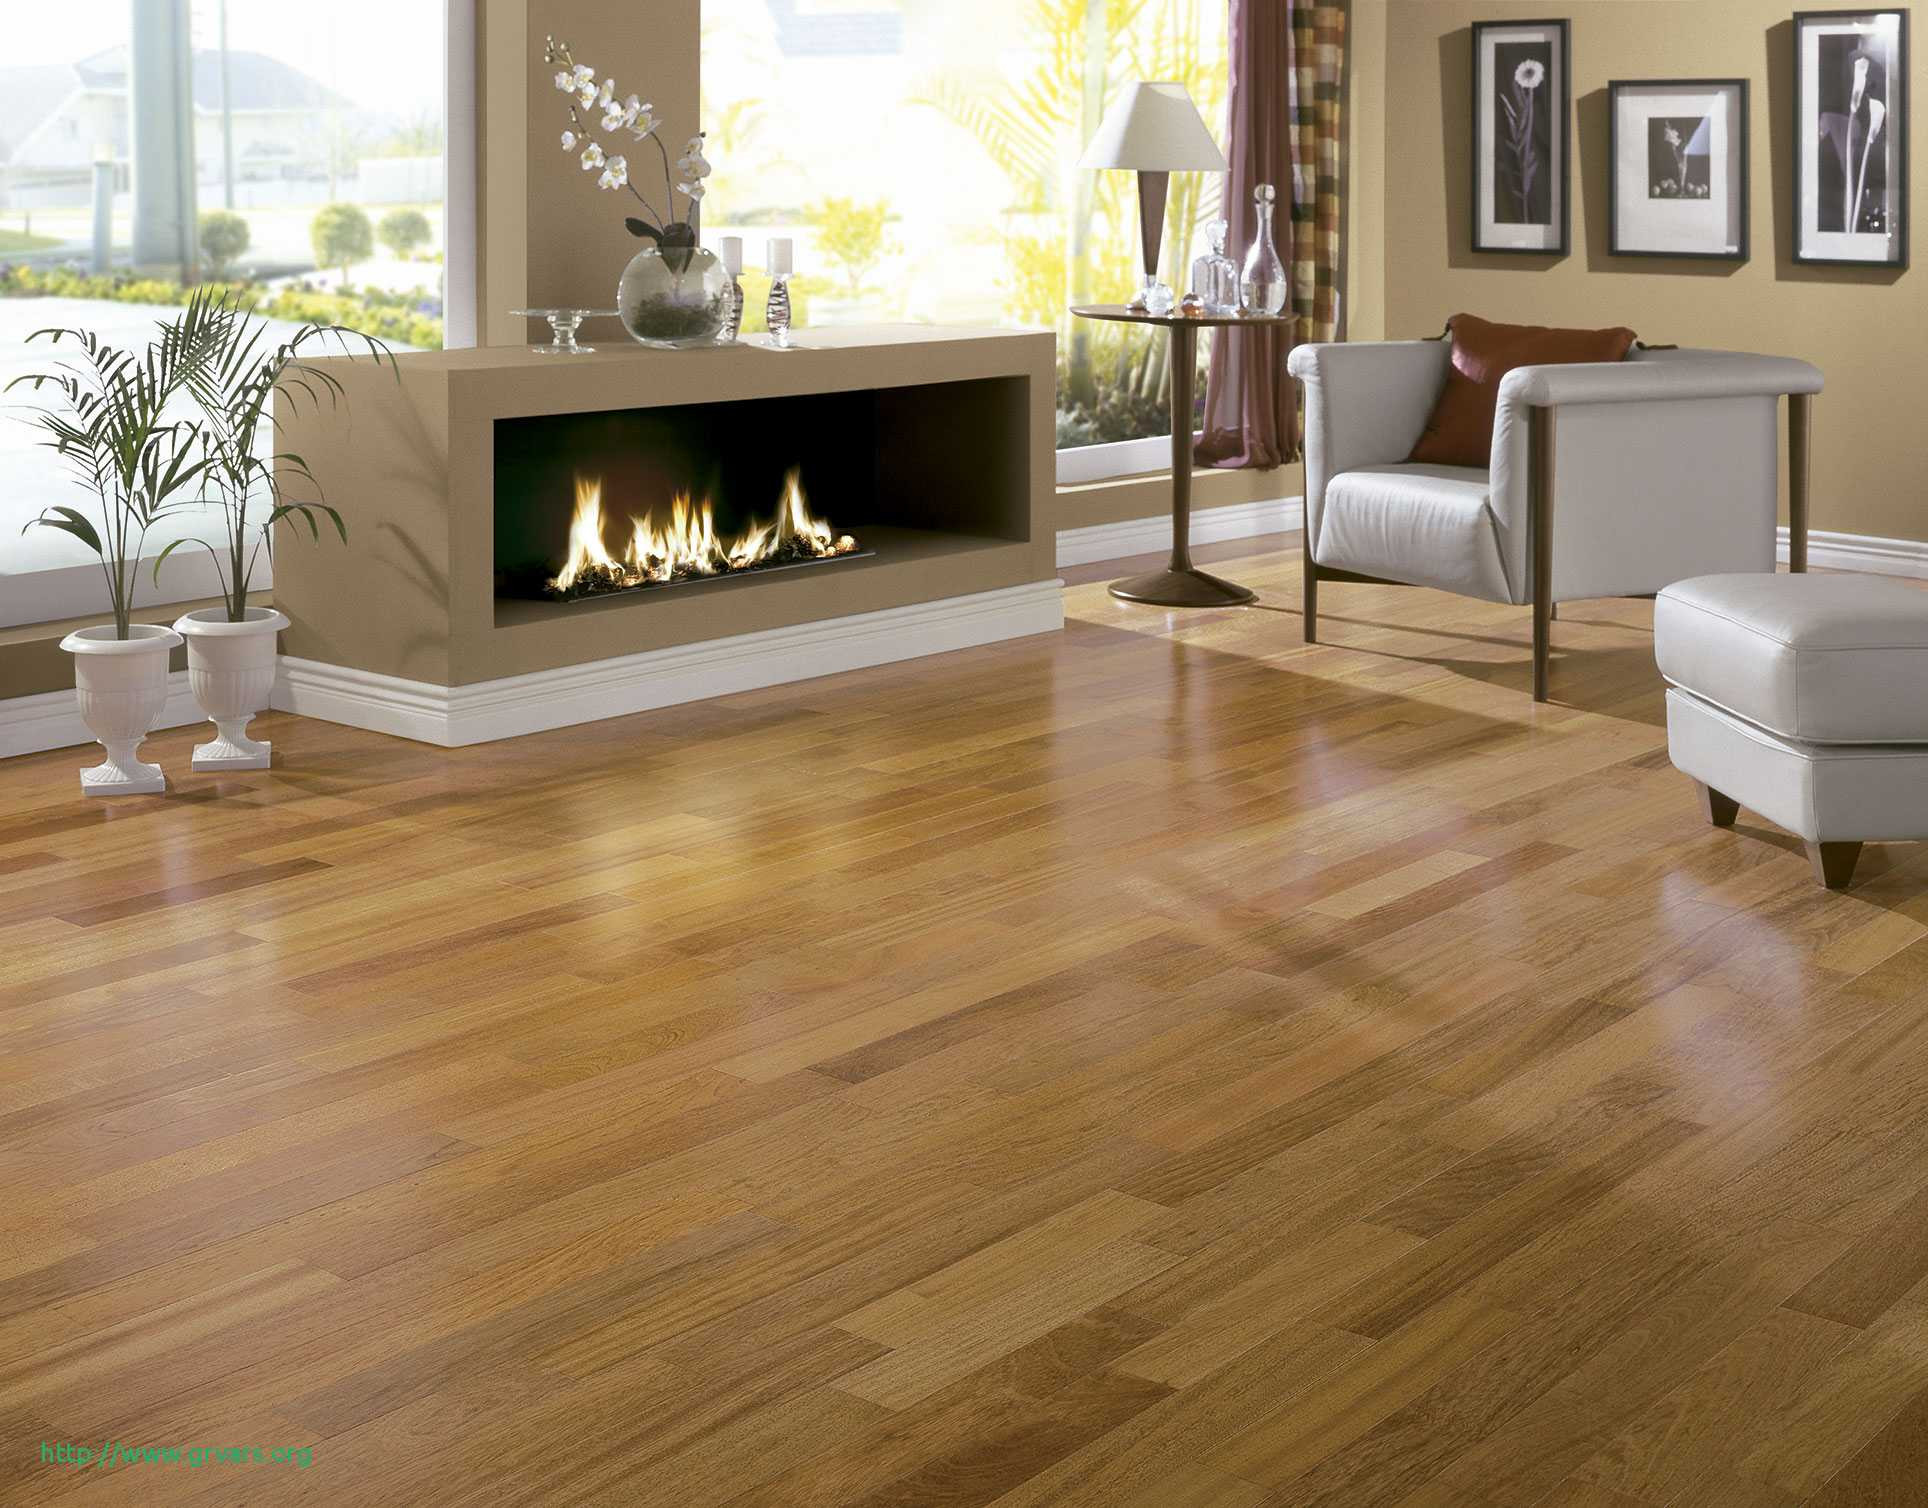 hardwood floor maintenance care of 21 inspirant best method for cleaning wood floors ideas blog in best method for cleaning wood floors charmant engaging discount hardwood flooring 5 where to buy inspirational